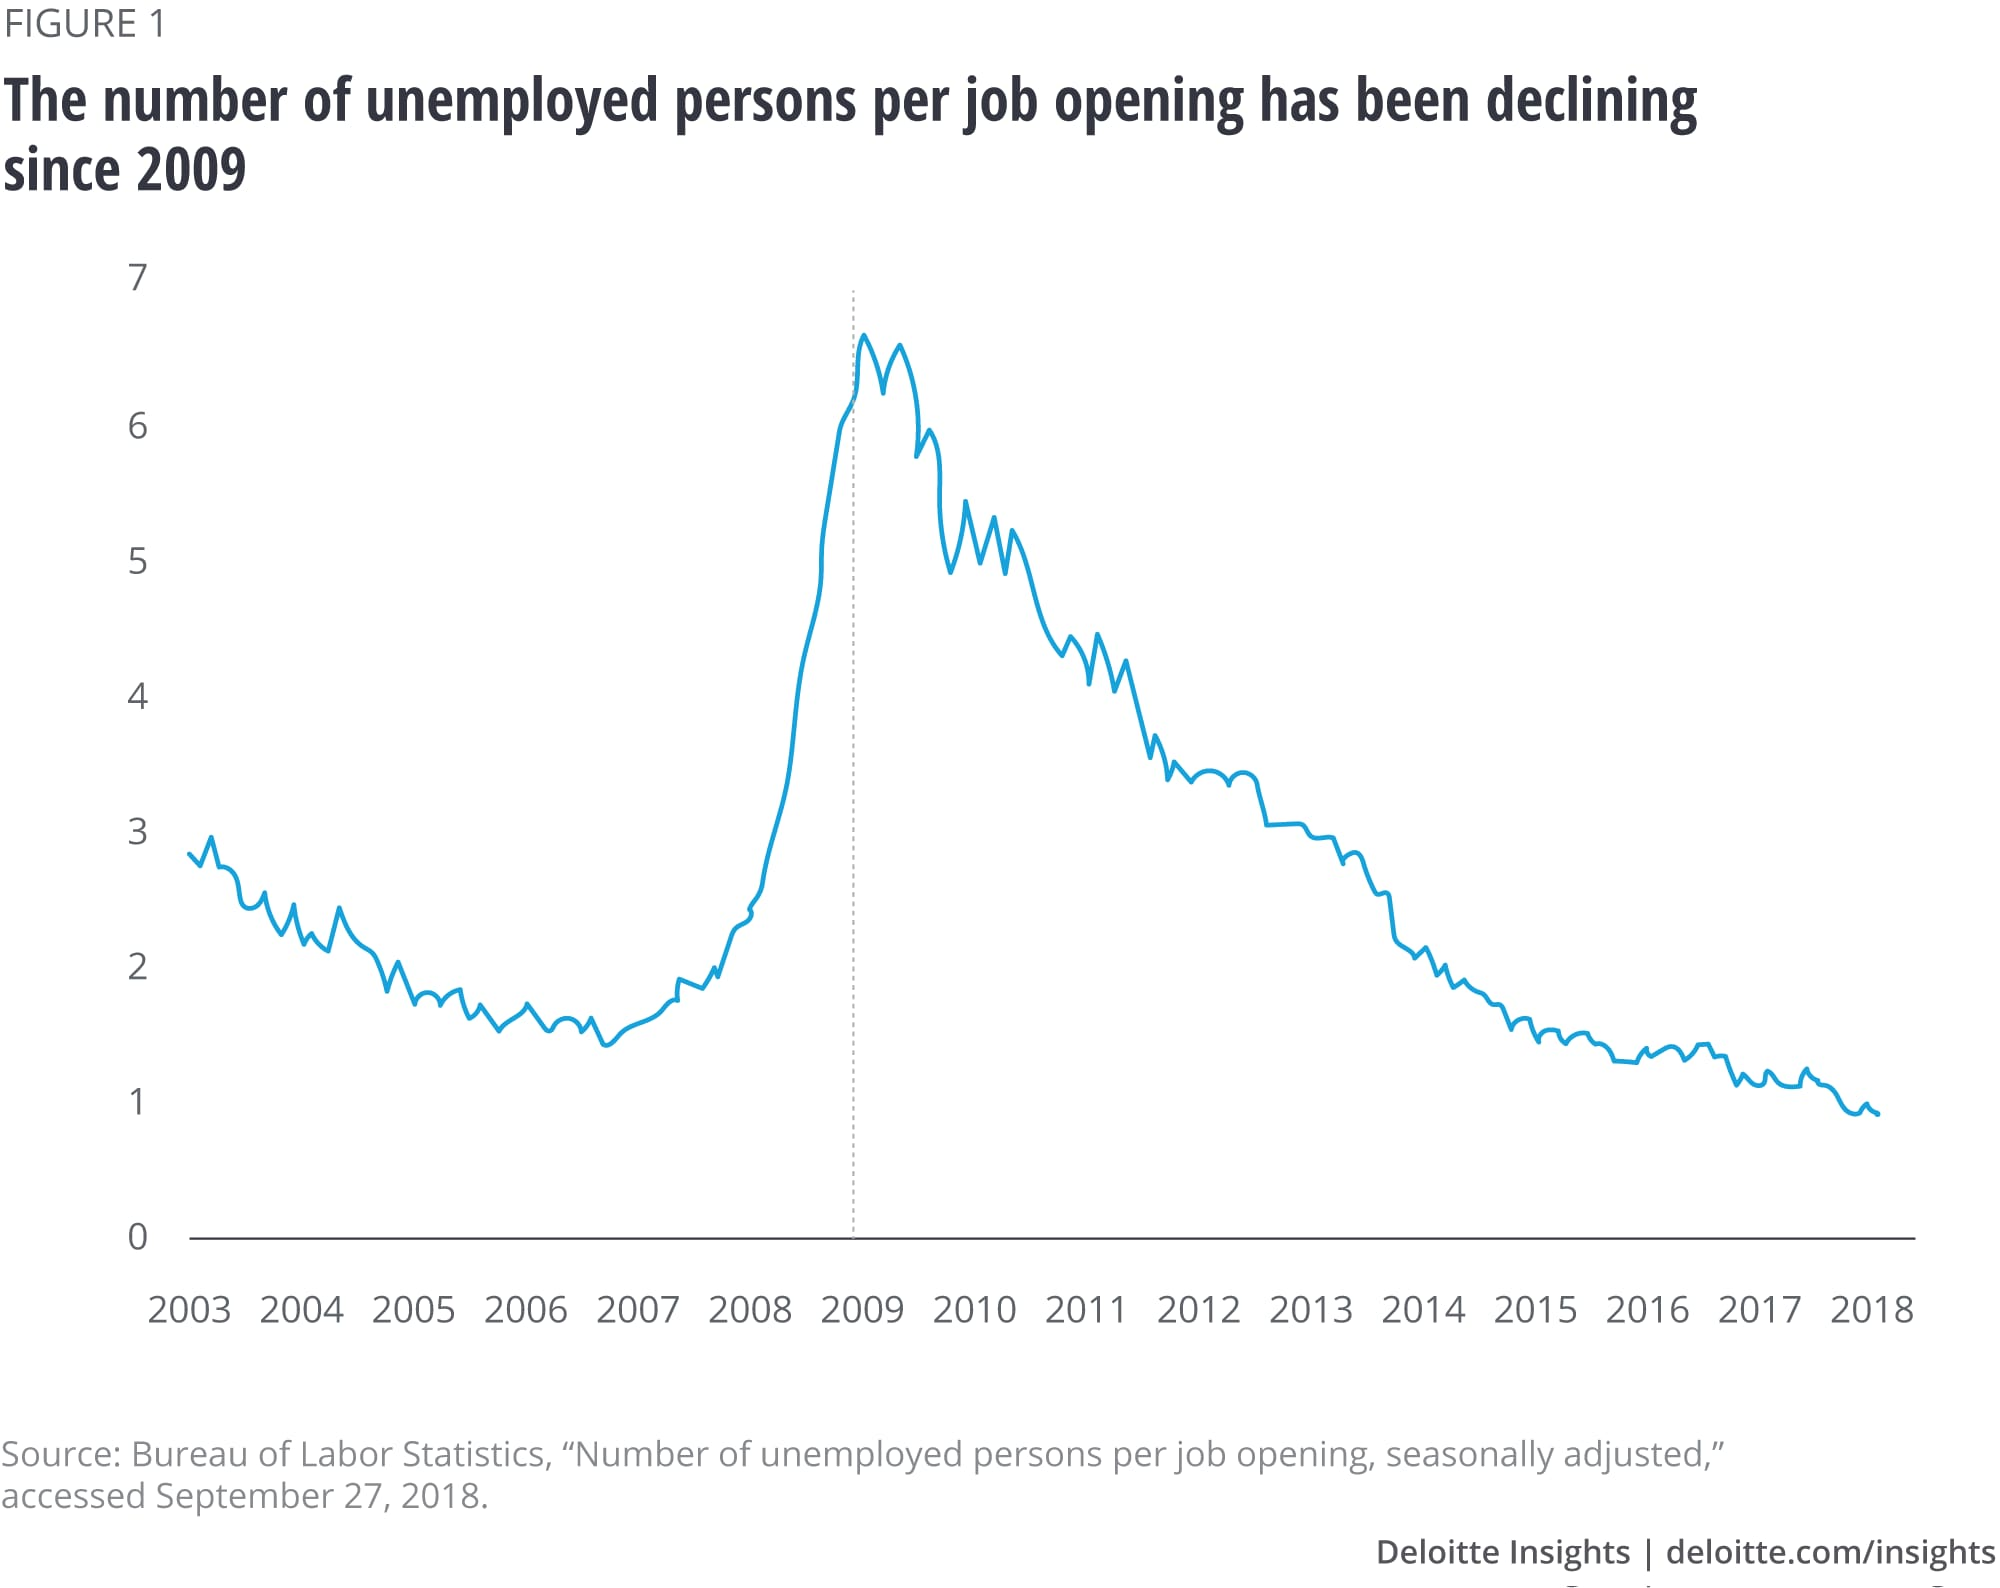 The number of unemployed persons per job opening has been declining since 2009